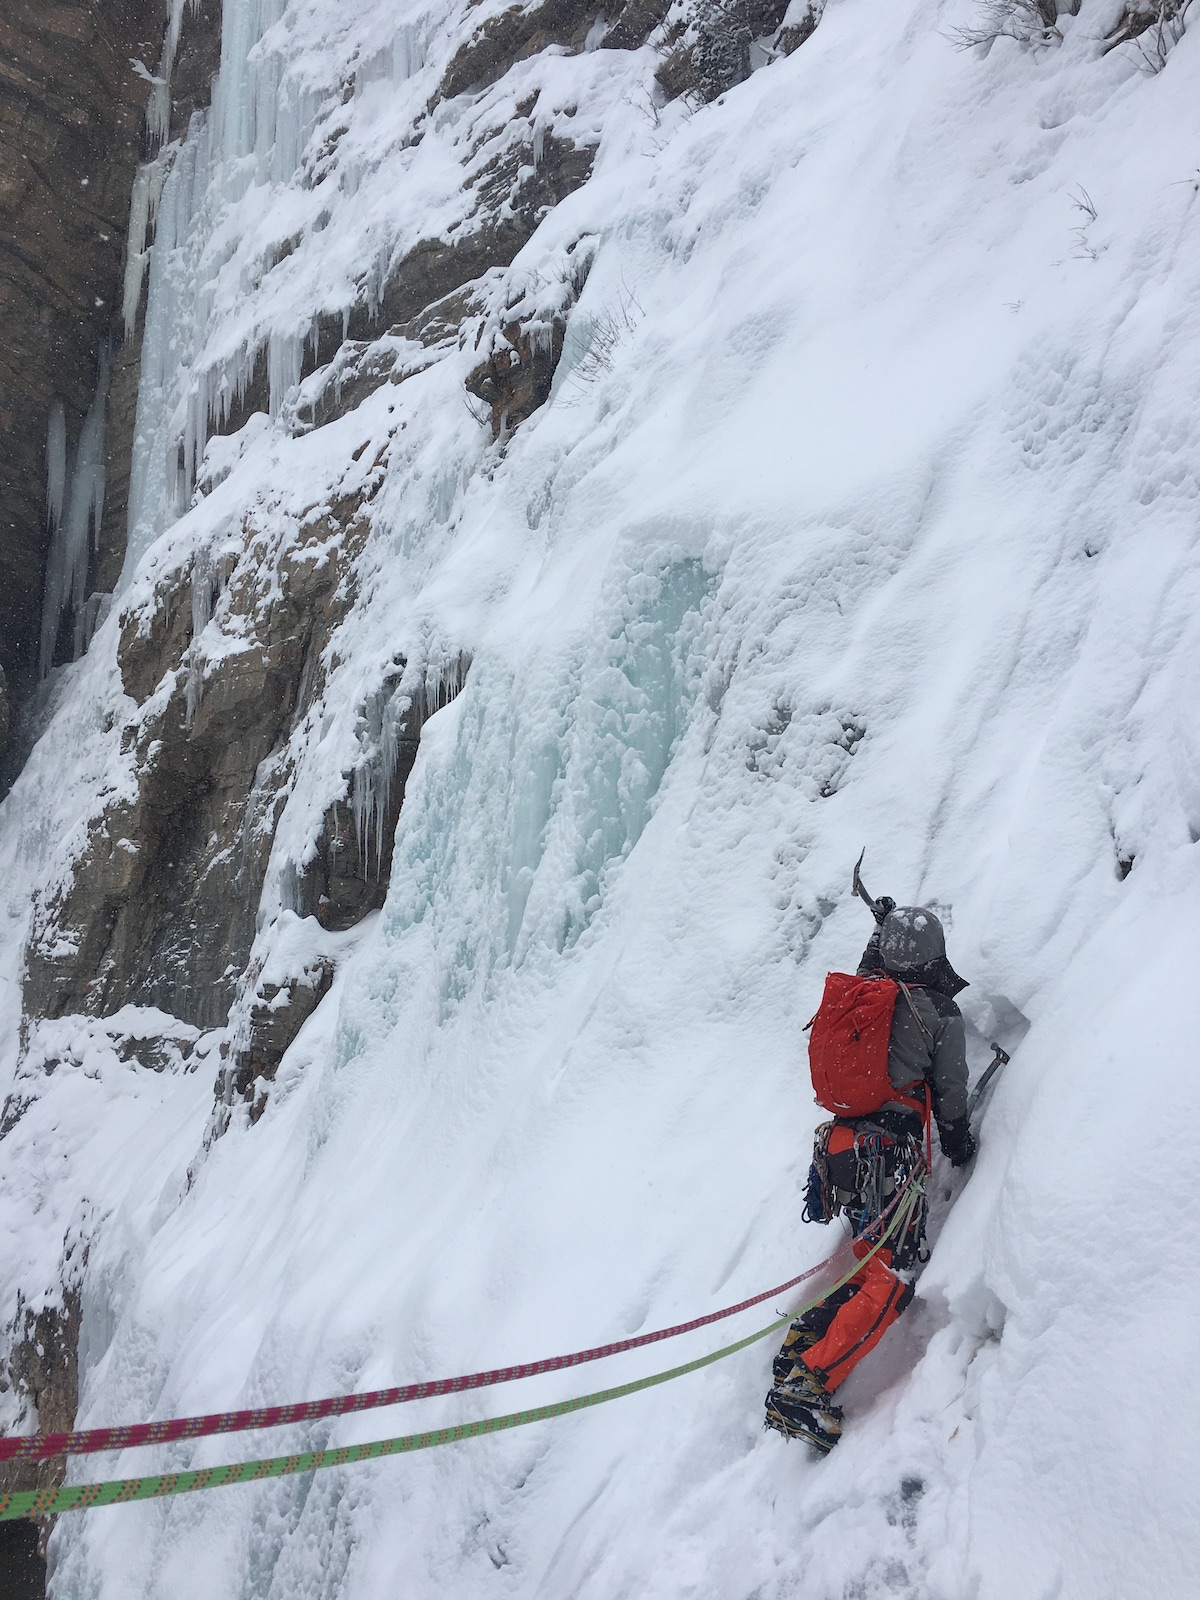 Franz leads Pitch 2 of Hidden Falls with the Mountain Equipment Tupilak 30. [Photo] Craig Helm